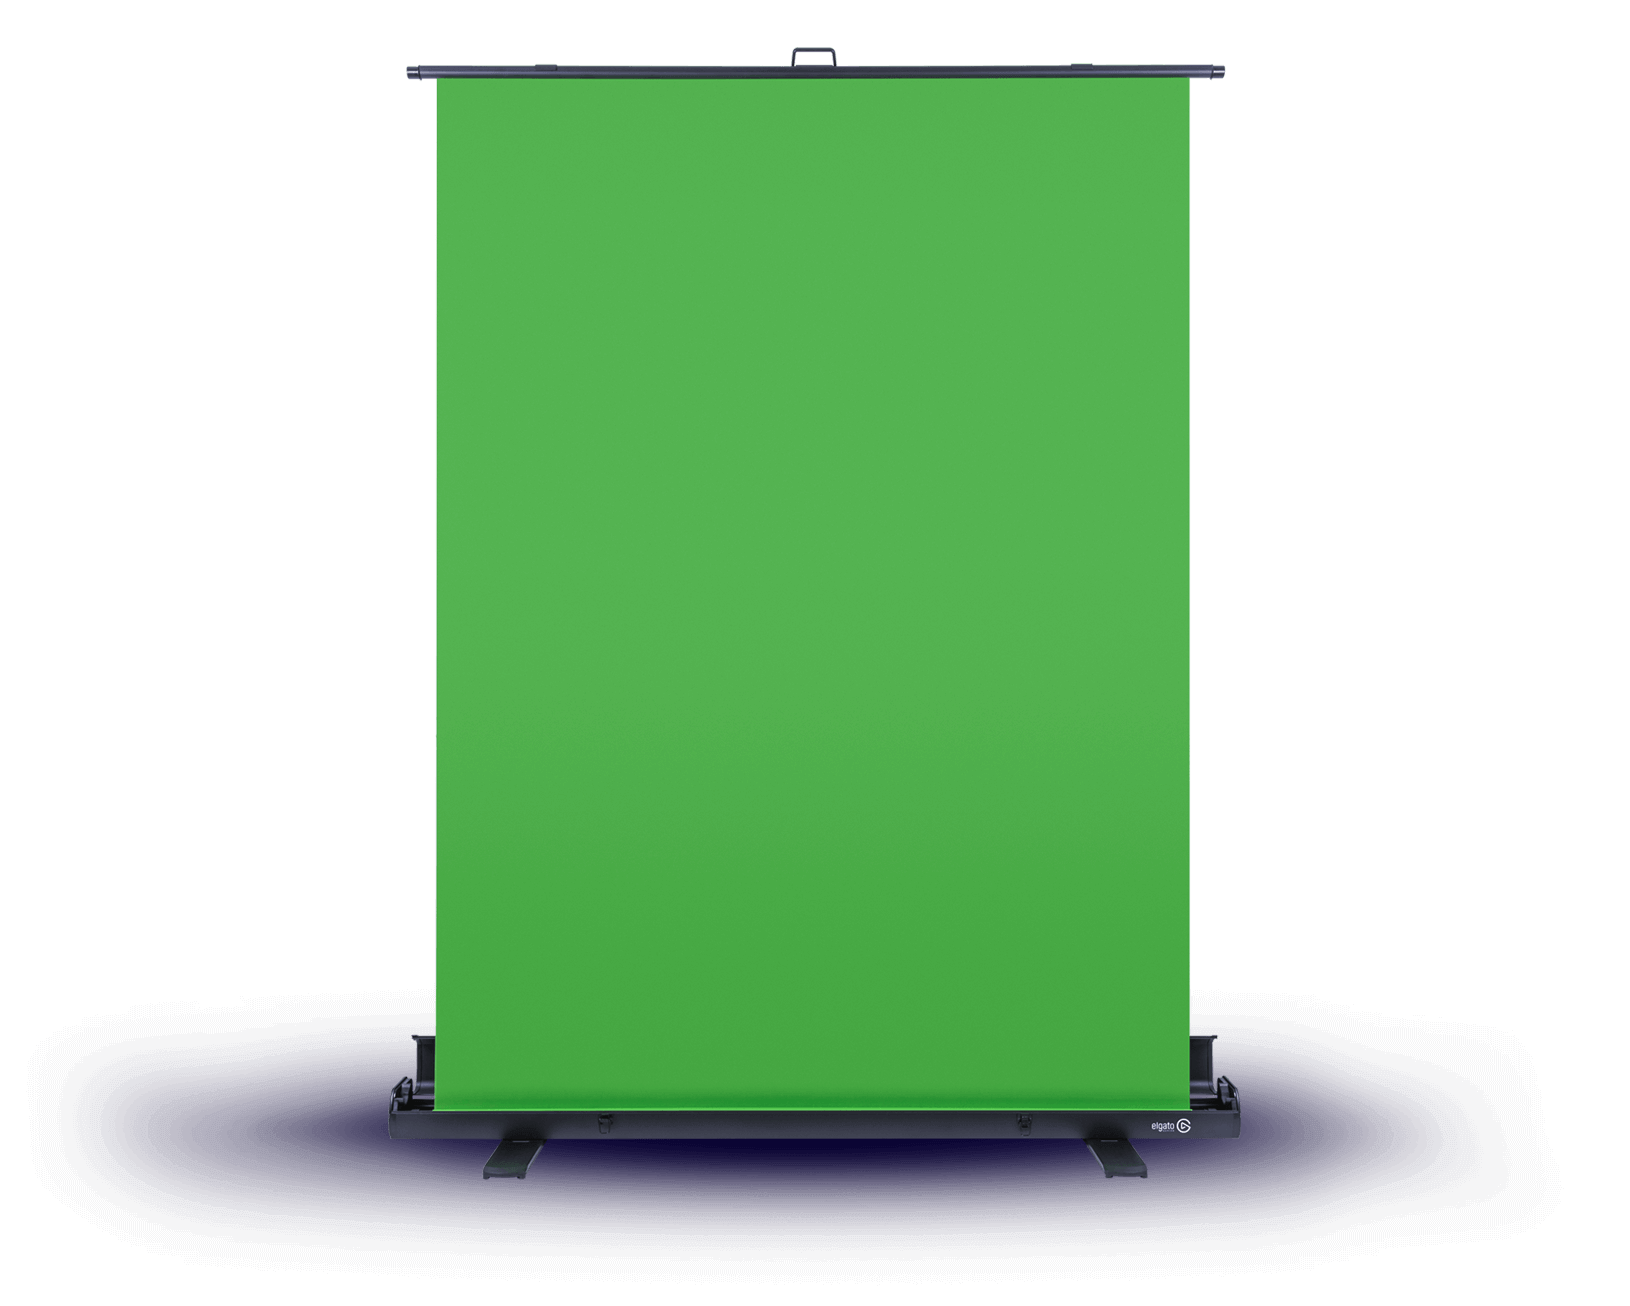 Green screen clipart video png royalty free Green Screen | elgato.com png royalty free